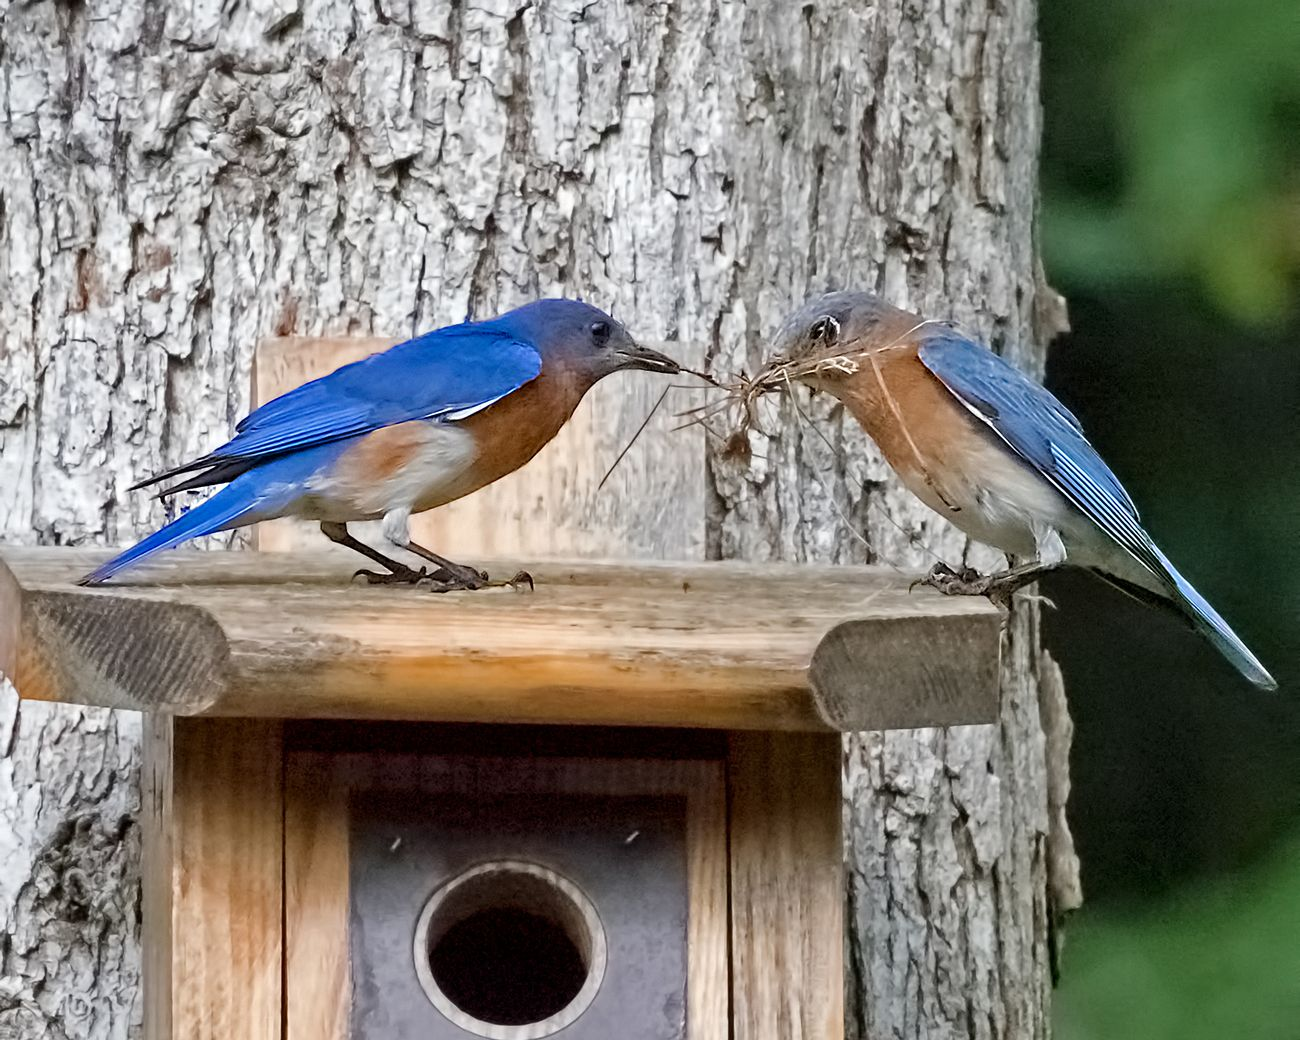 Pair of blue birds sharing nesting material atop a tree-mounted bird box.